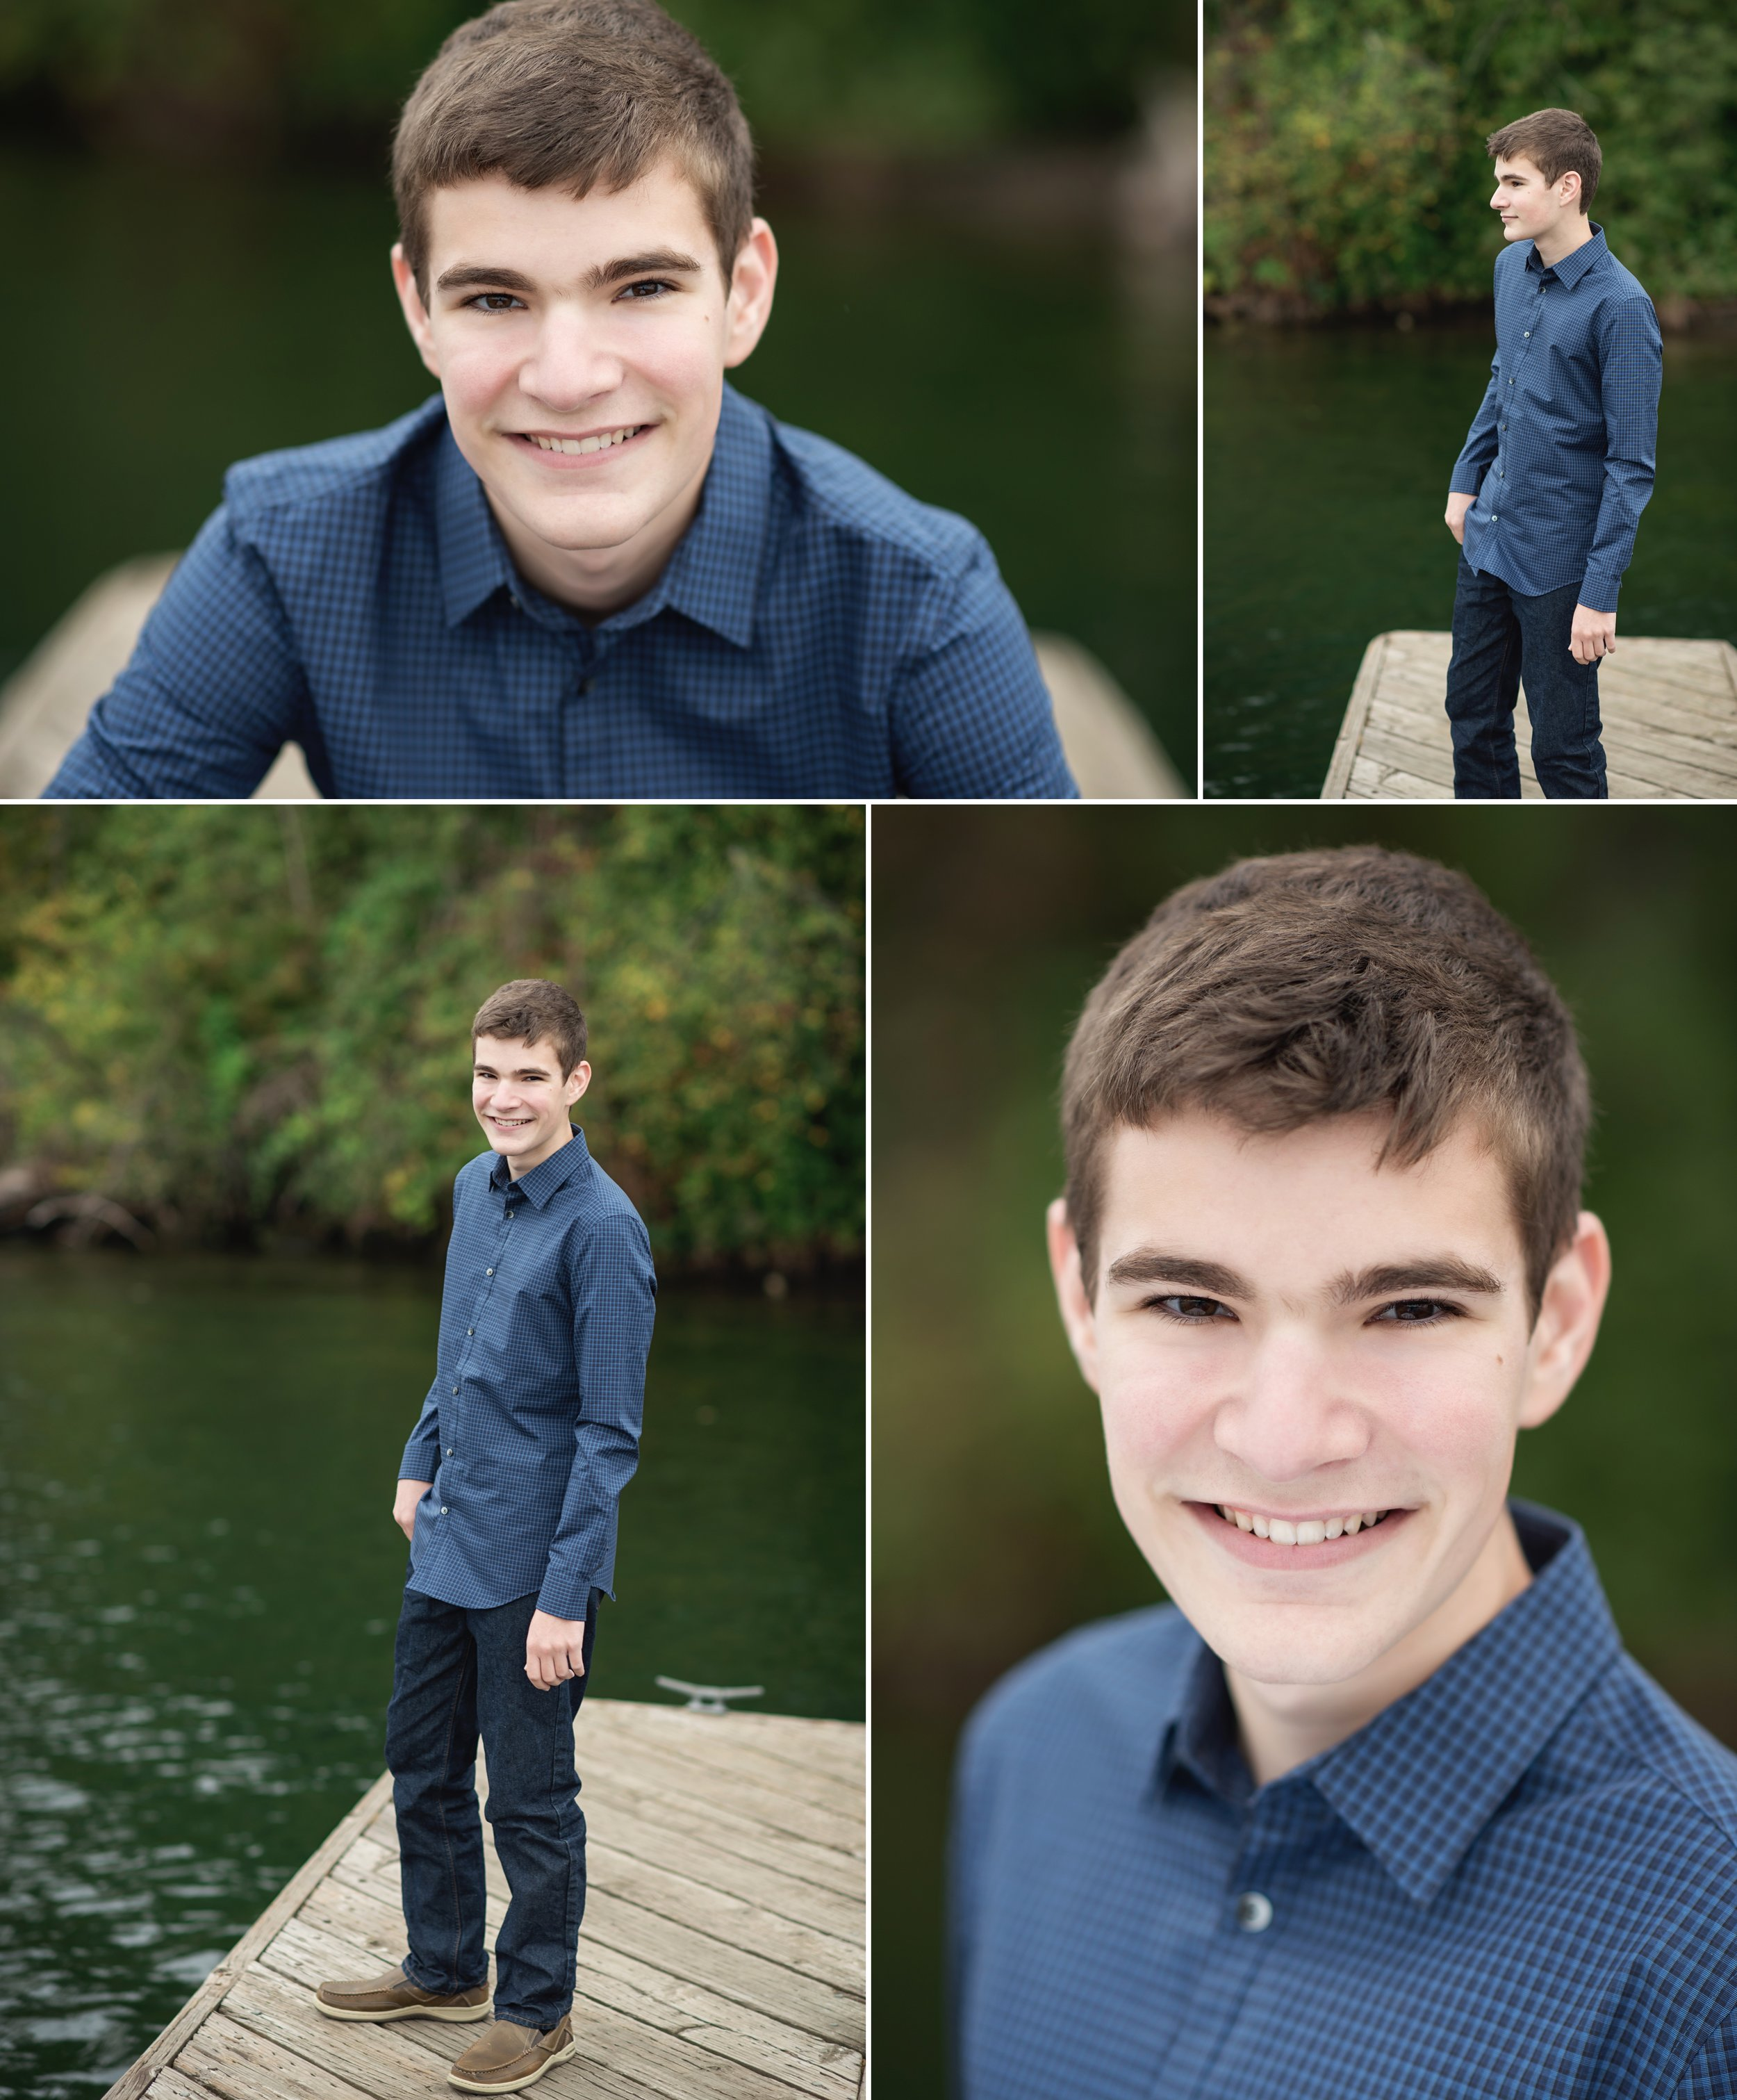 Mary Vance Photography Senior Guy Photographer Sammamish Washington Luther Burbank Park